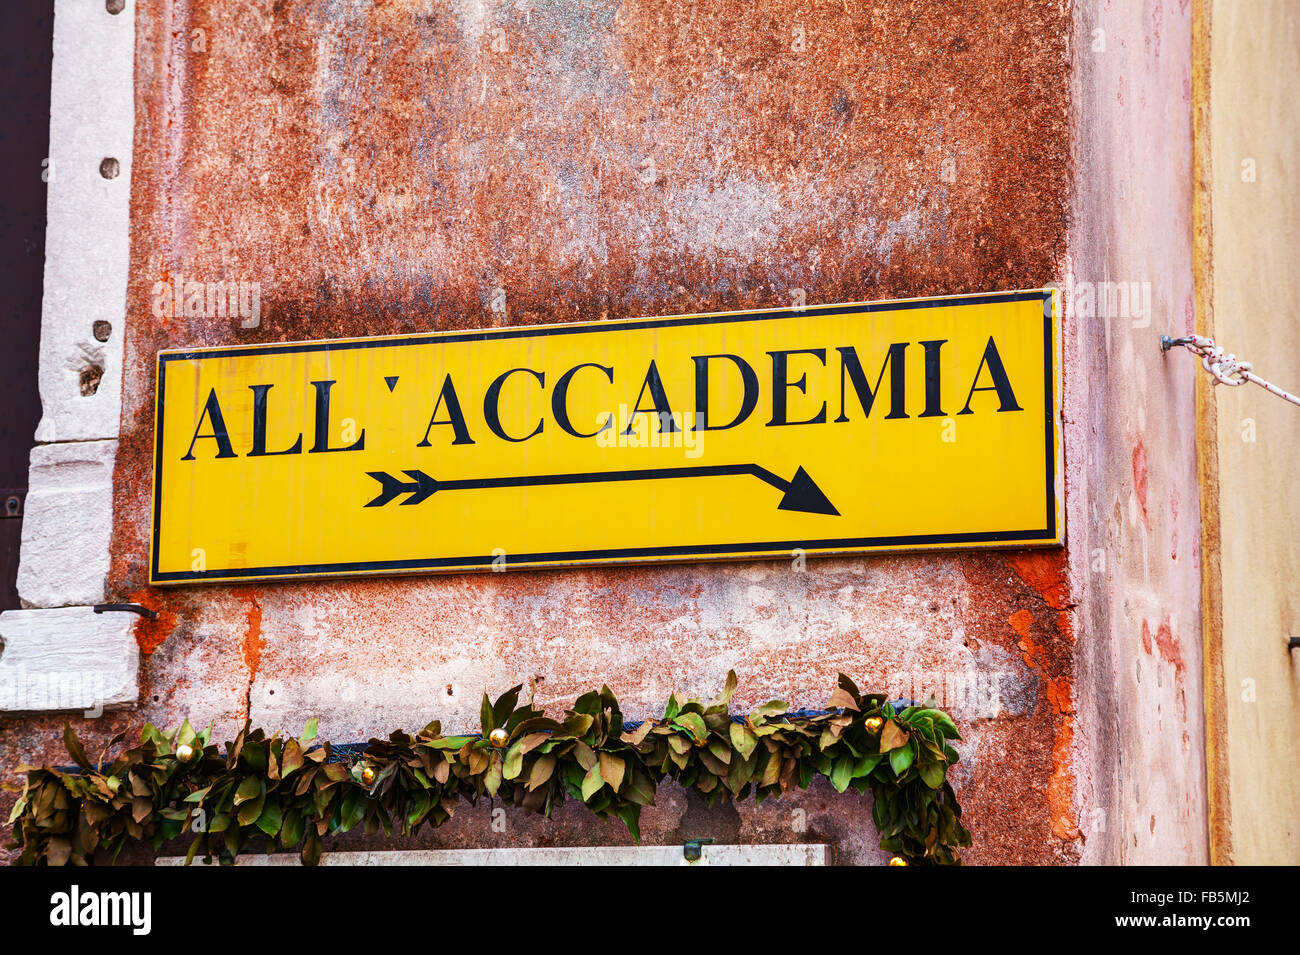 All Accademia direction sign in Venice, Italy Stock Photo